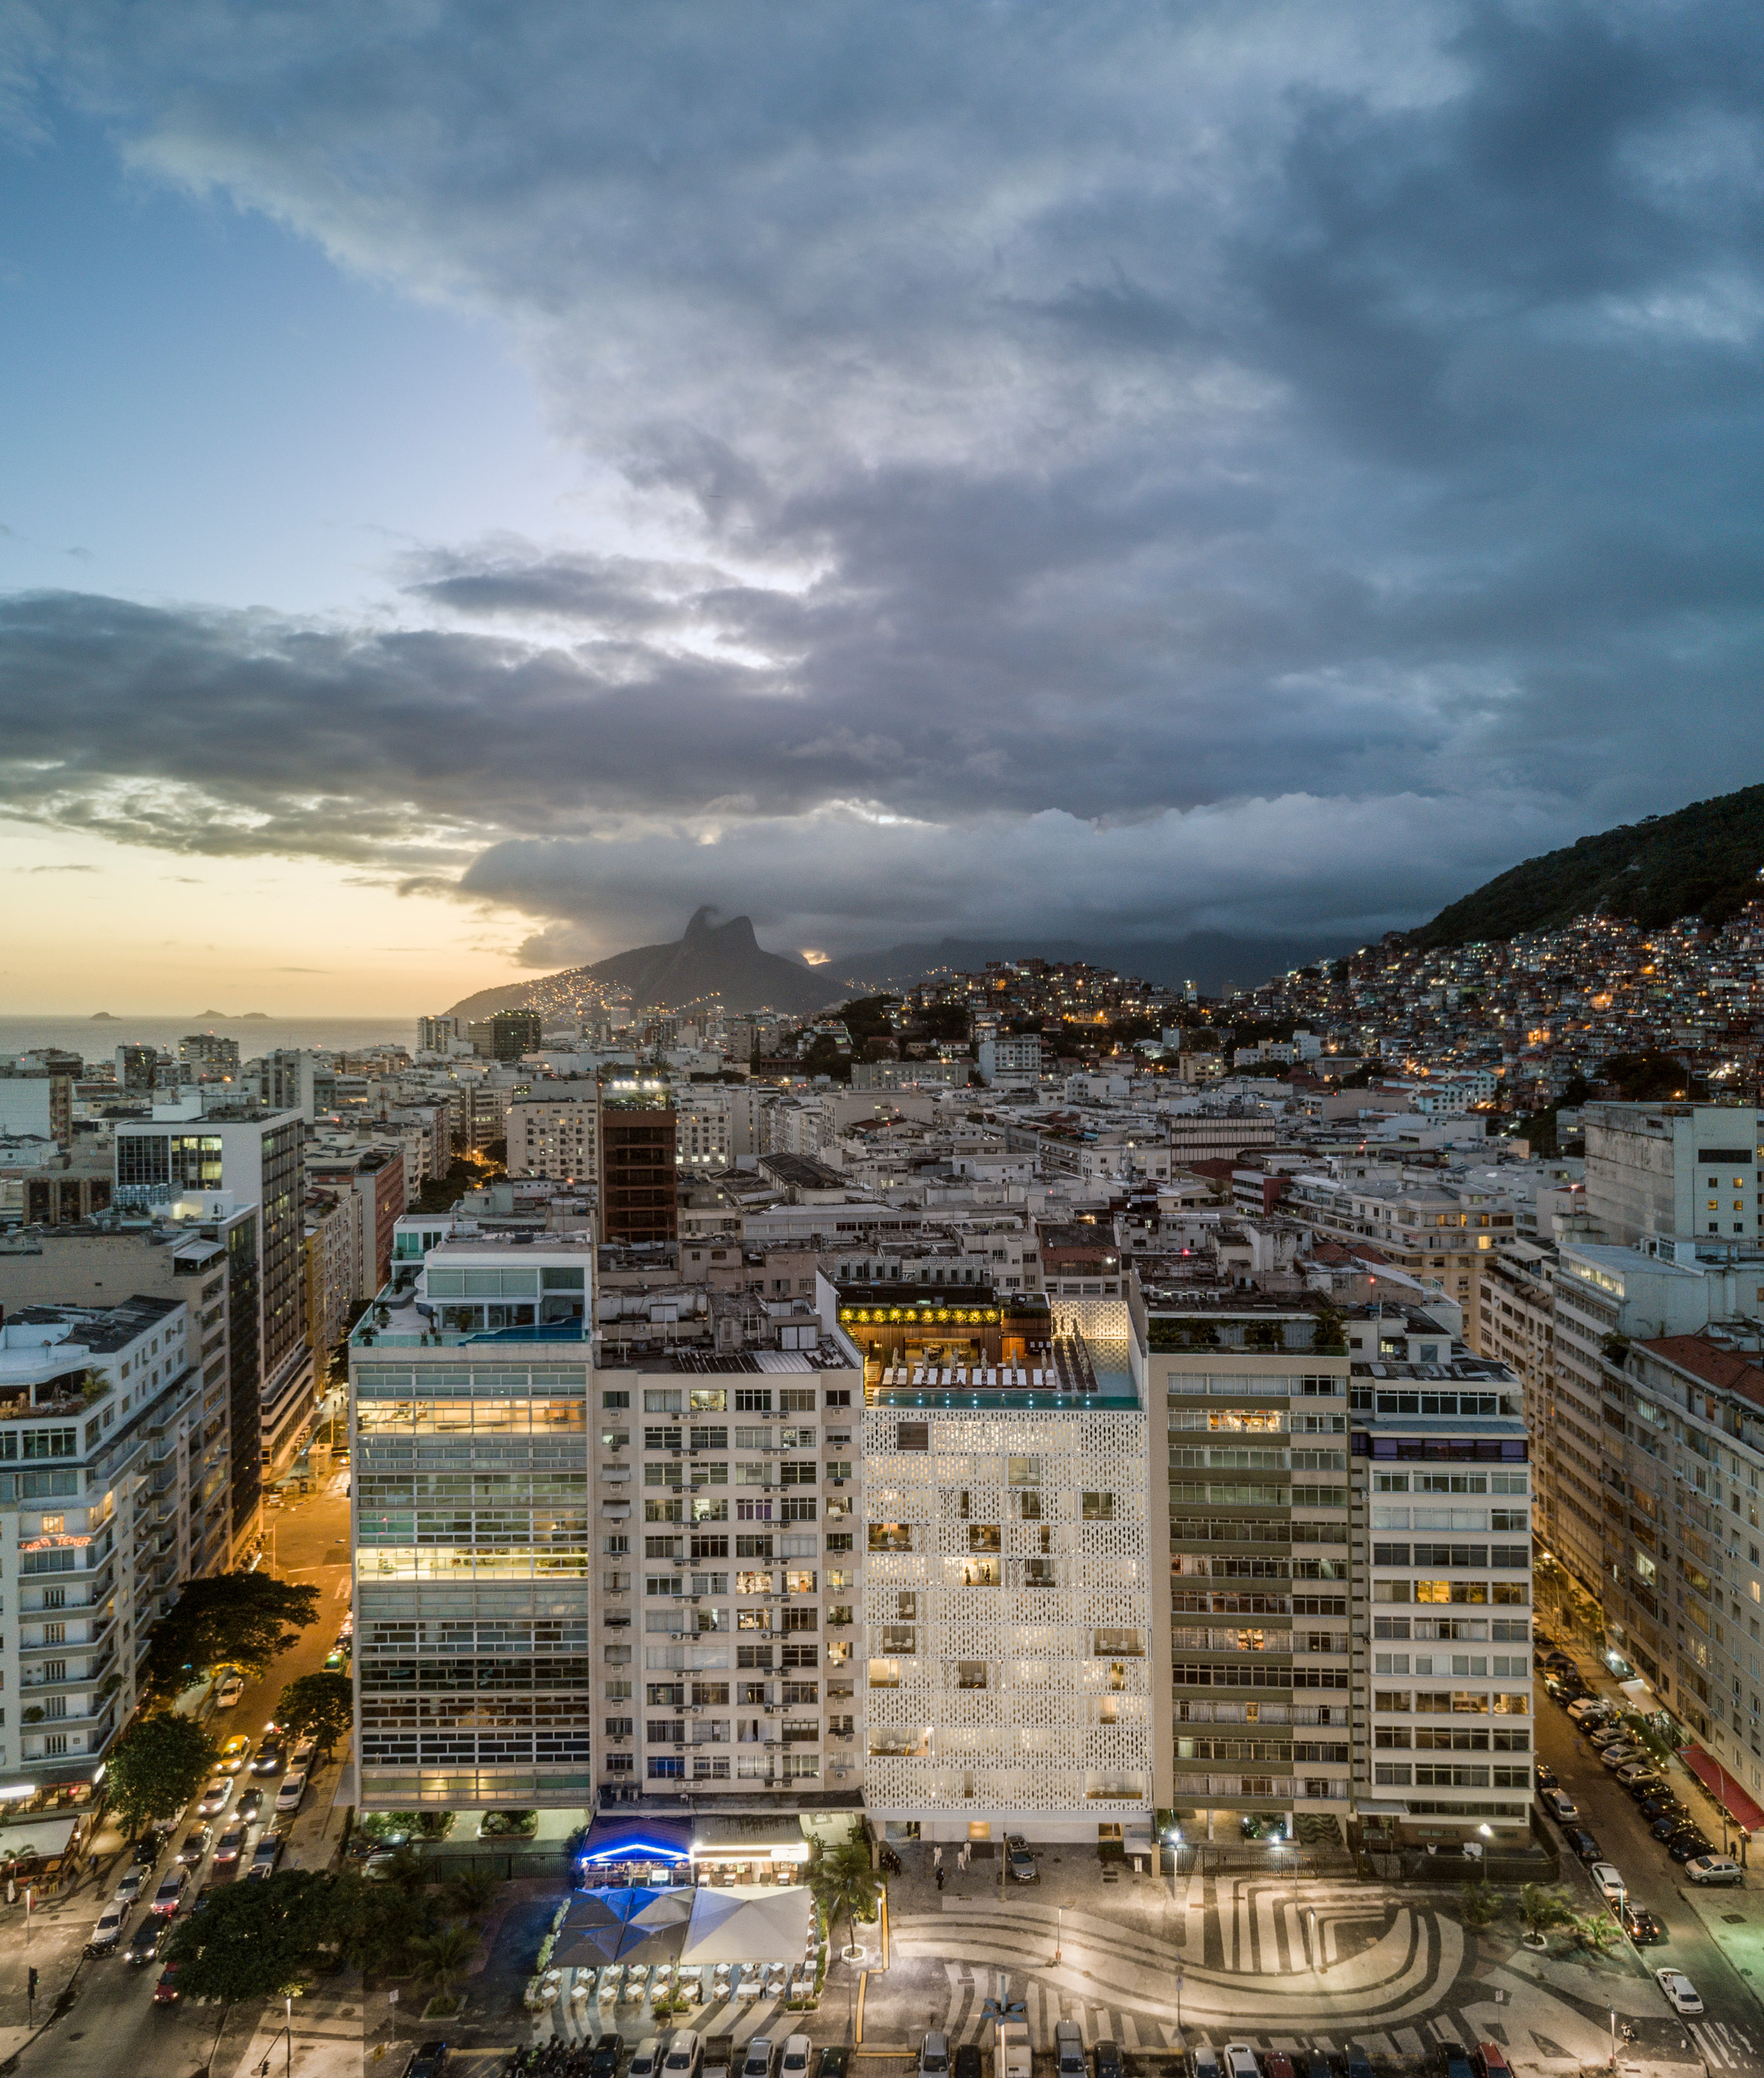 Glazed pool and holey shutters offer Copacabana Beach views from Rio de Janeiro hotel